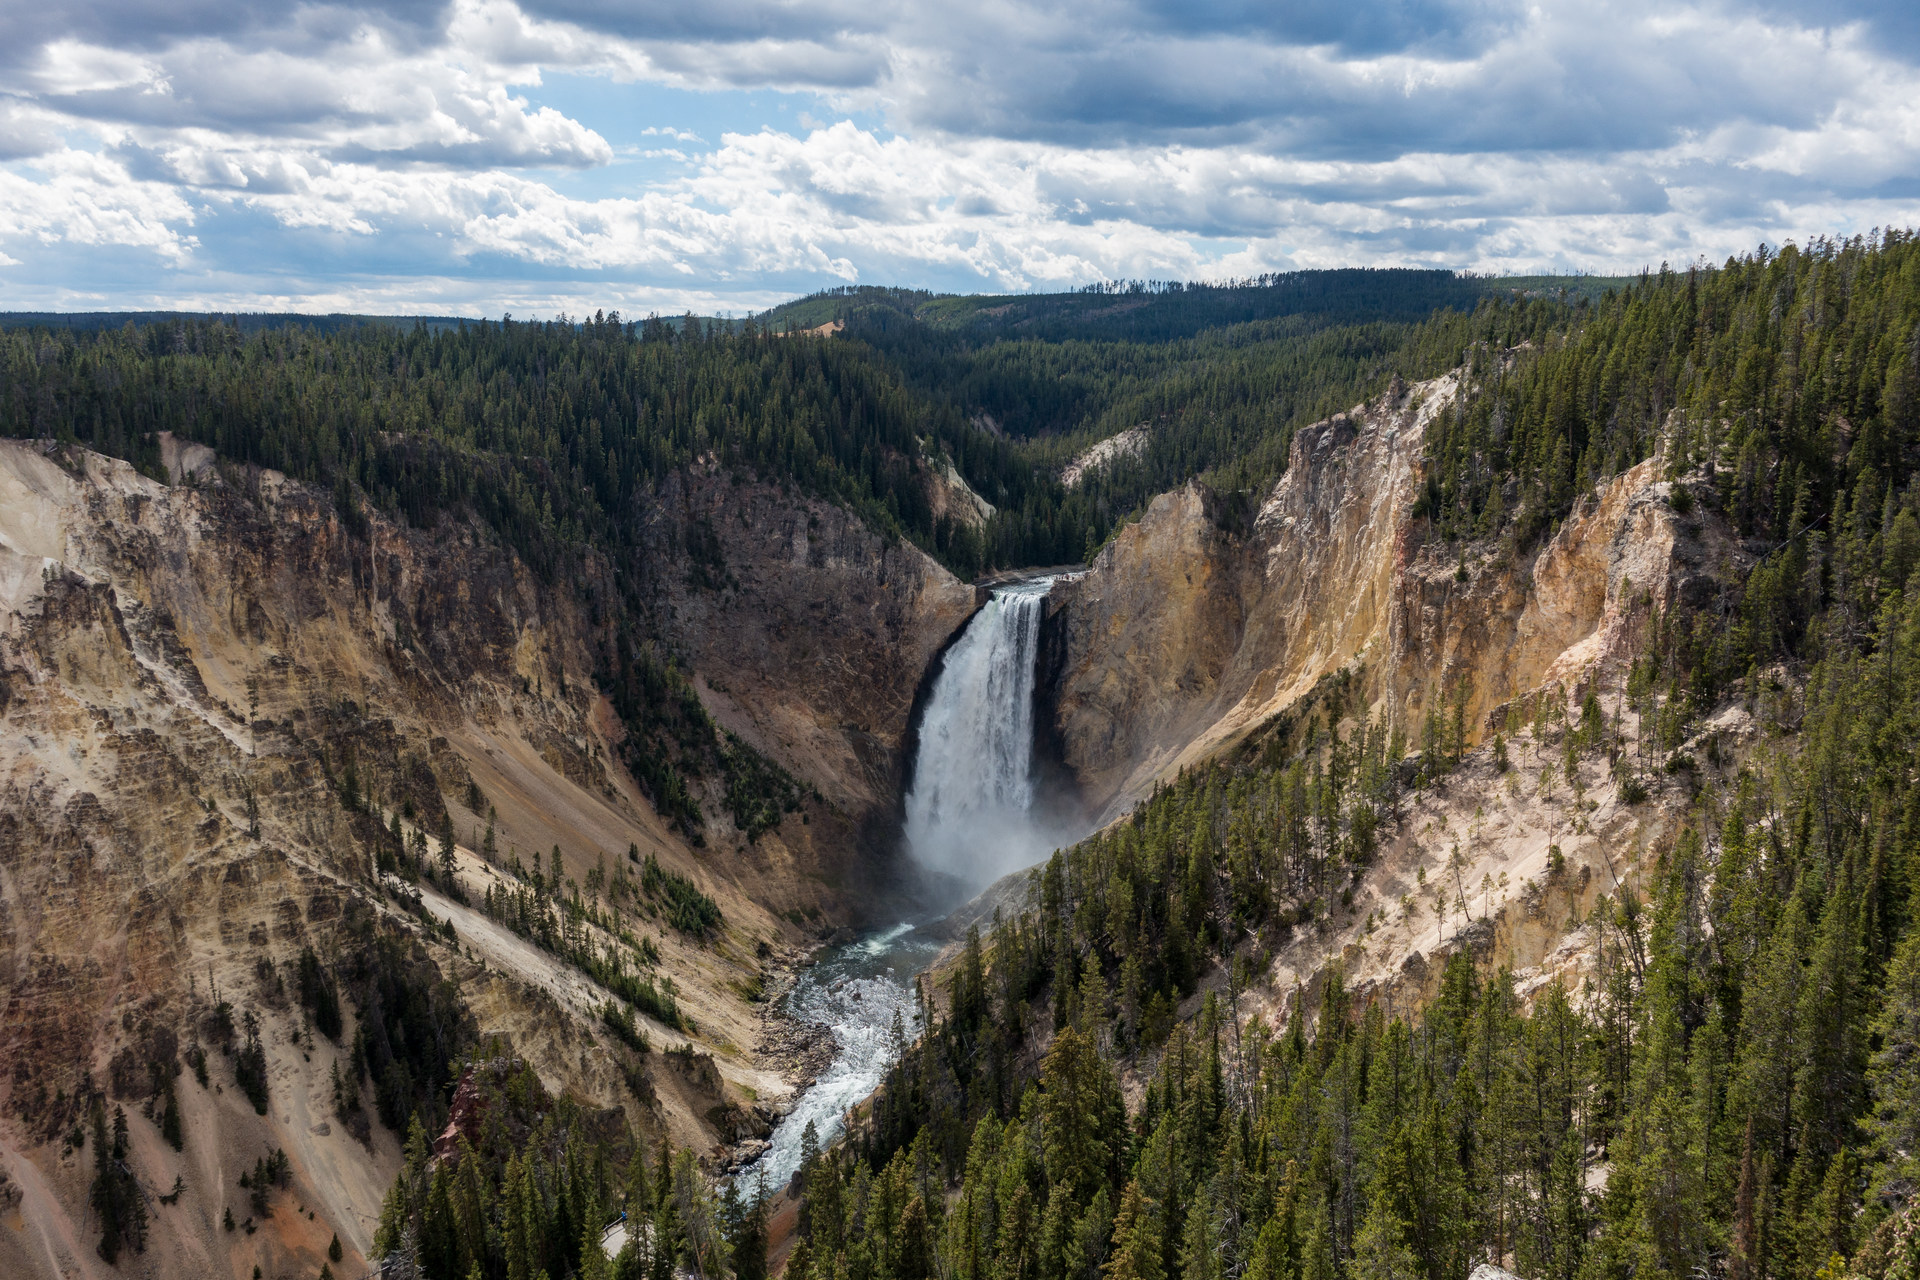 yellowstone national park christian personals For sale, personals  the south idaho press treasure valley christian  yellowstone vacations our local travel guide for yellowstone national park.